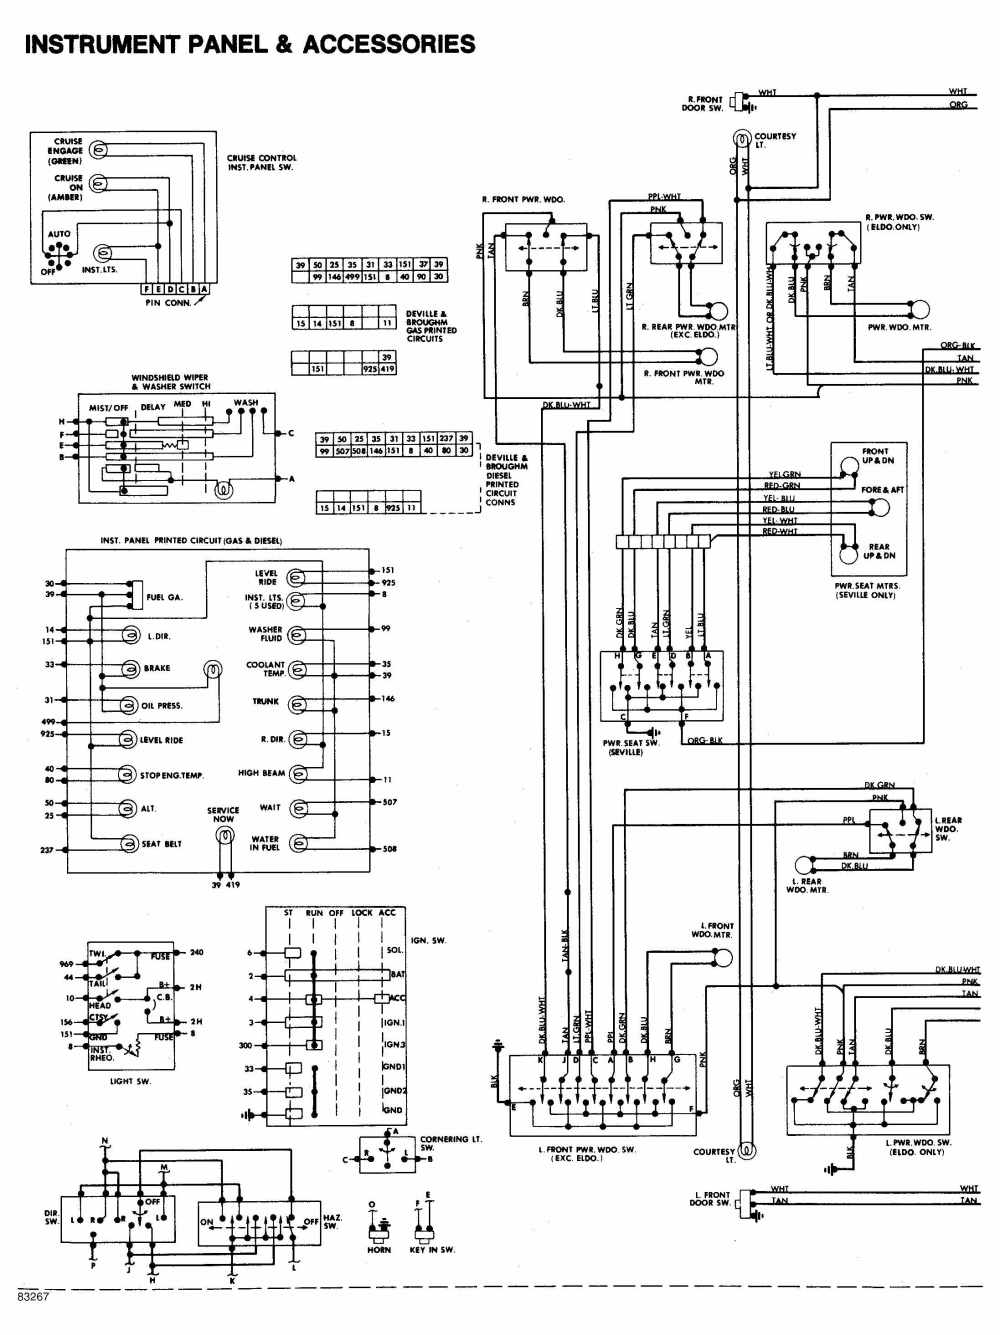 medium resolution of 94 deville wiring diagram wiring library rh 14 csu lichtenhof de 1993 cadillac deville wiring diagram 2001 cadillac deville wiring diagram